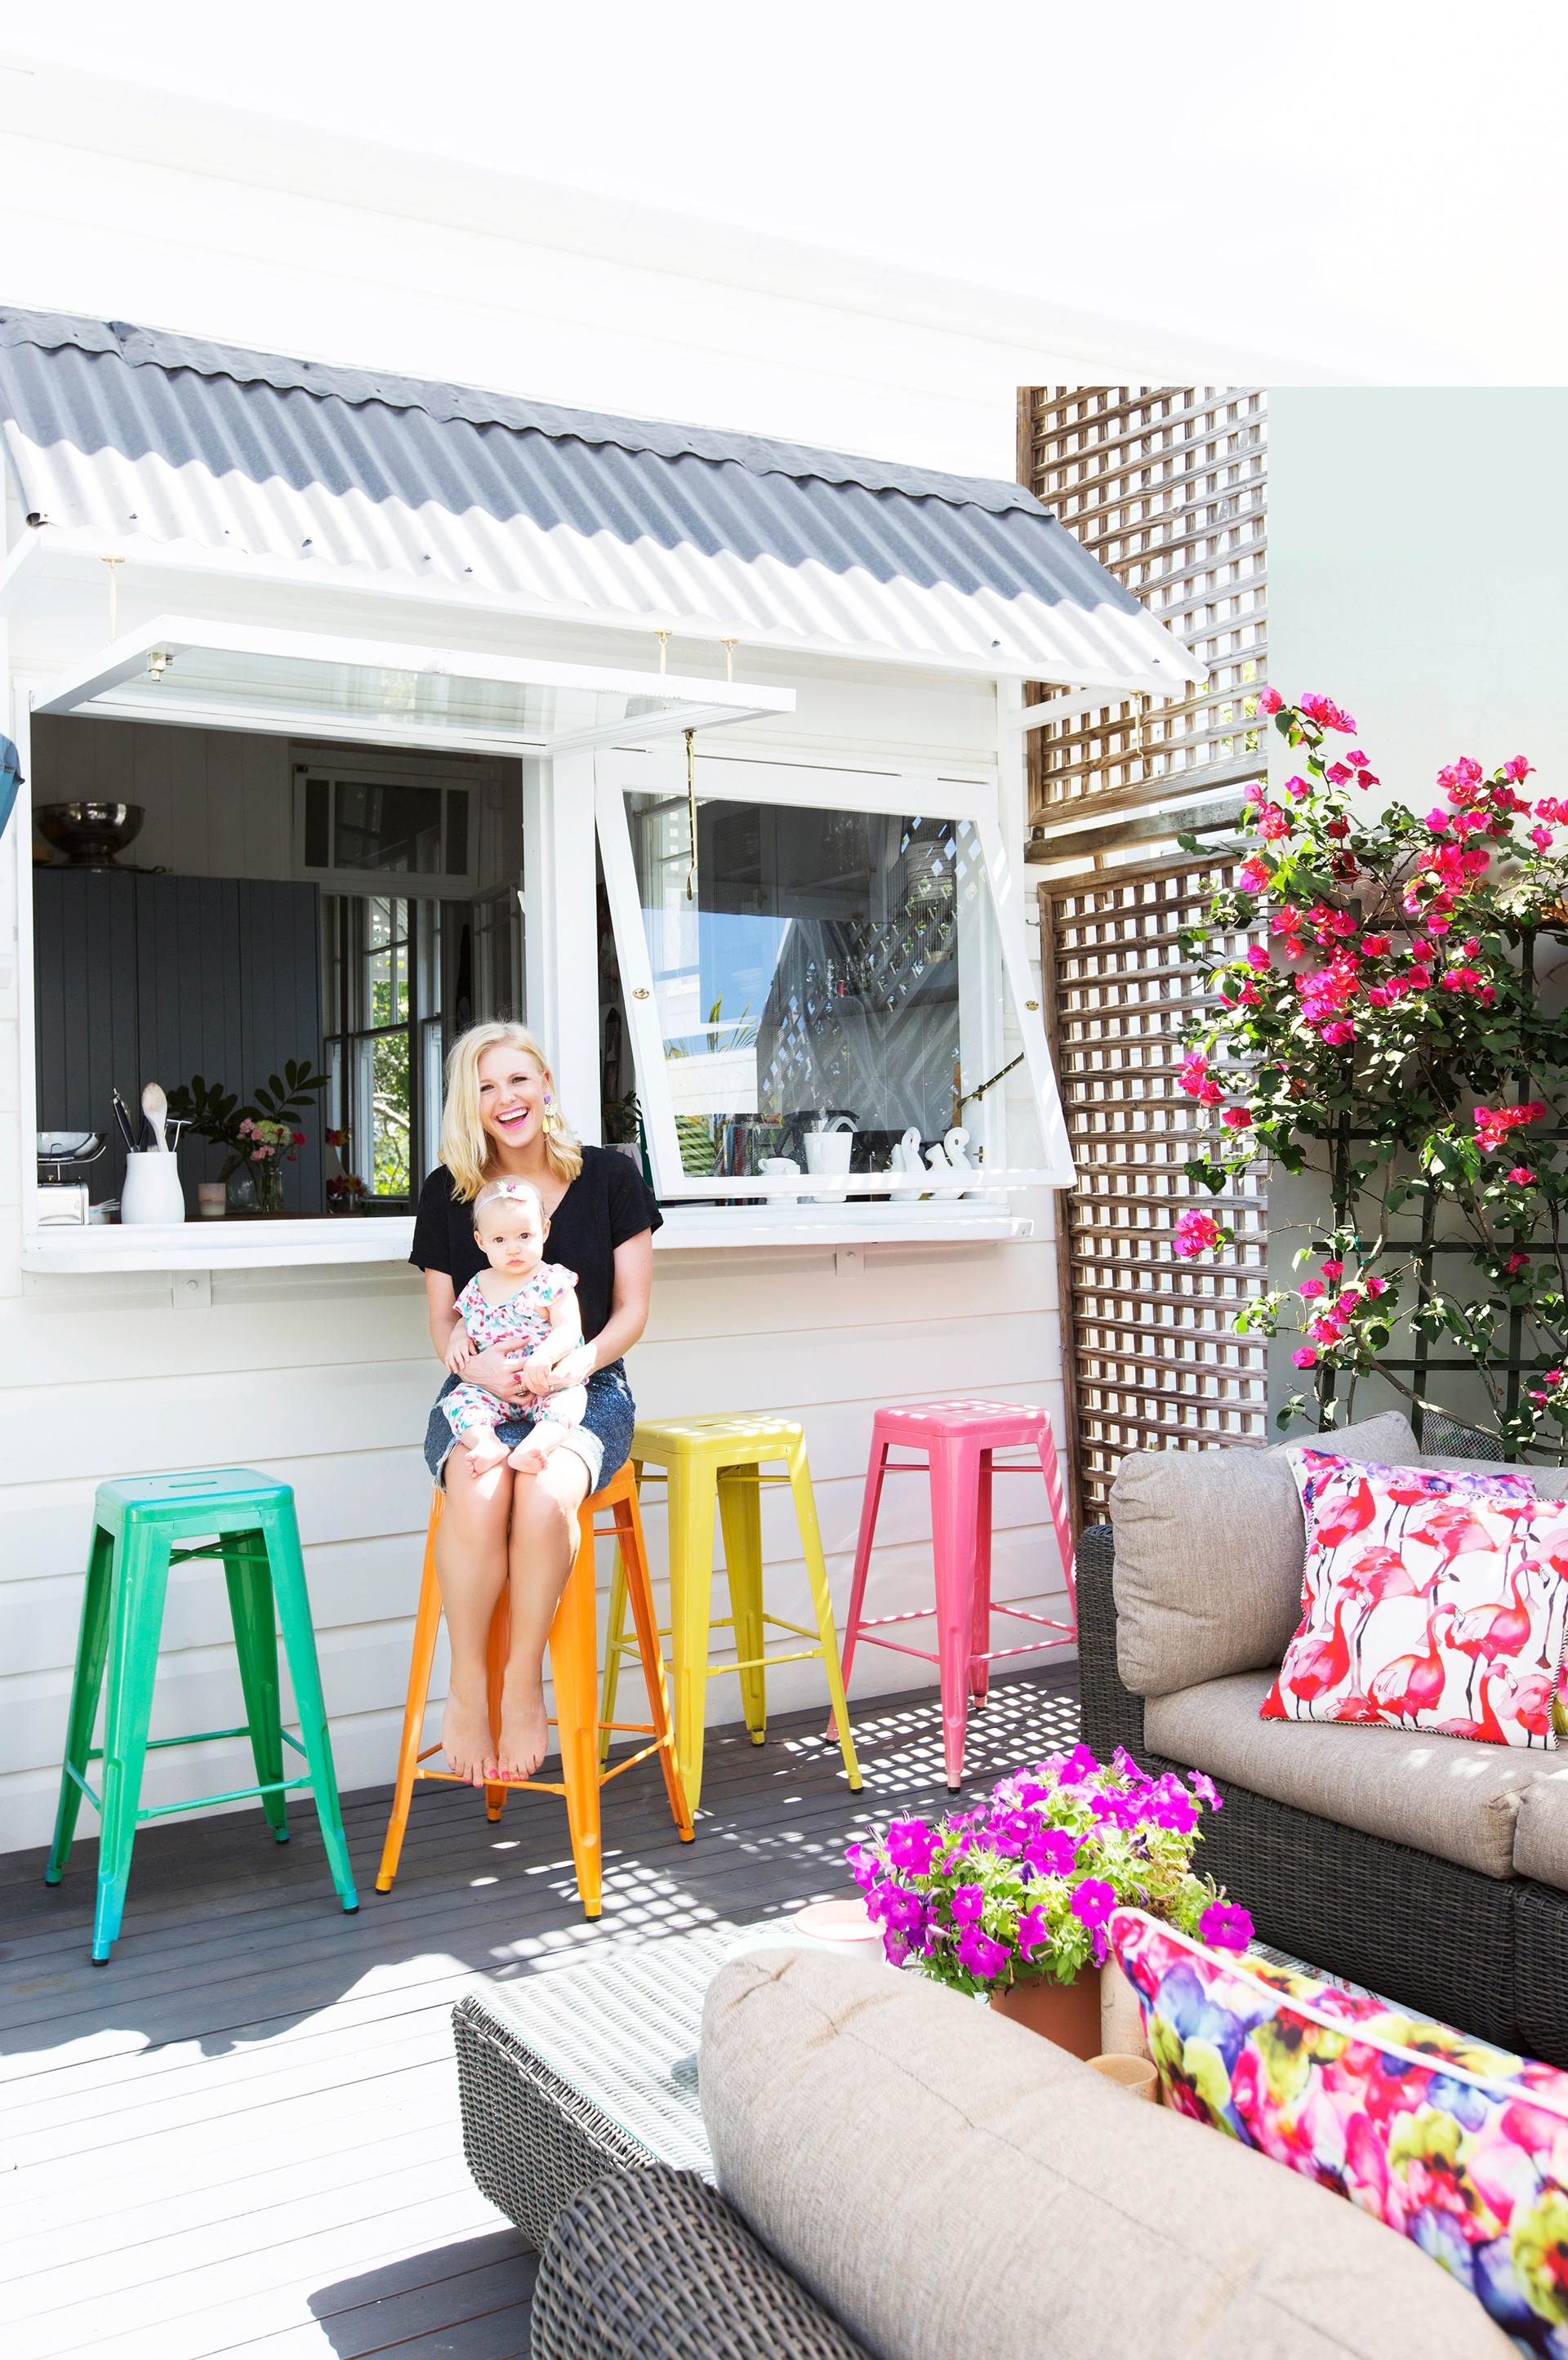 **Stephanie Rooke** This 110-year-old cottage in Paddington, Brisbane, was given a new life with a cheery and colourful makeover. [See the full home here](http://www.homestolove.com.au/queenslander-cottage-renovation-4061) or [vote for this home](http://www.homestolove.com.au/homes-reader-home-of-the-year-4499).